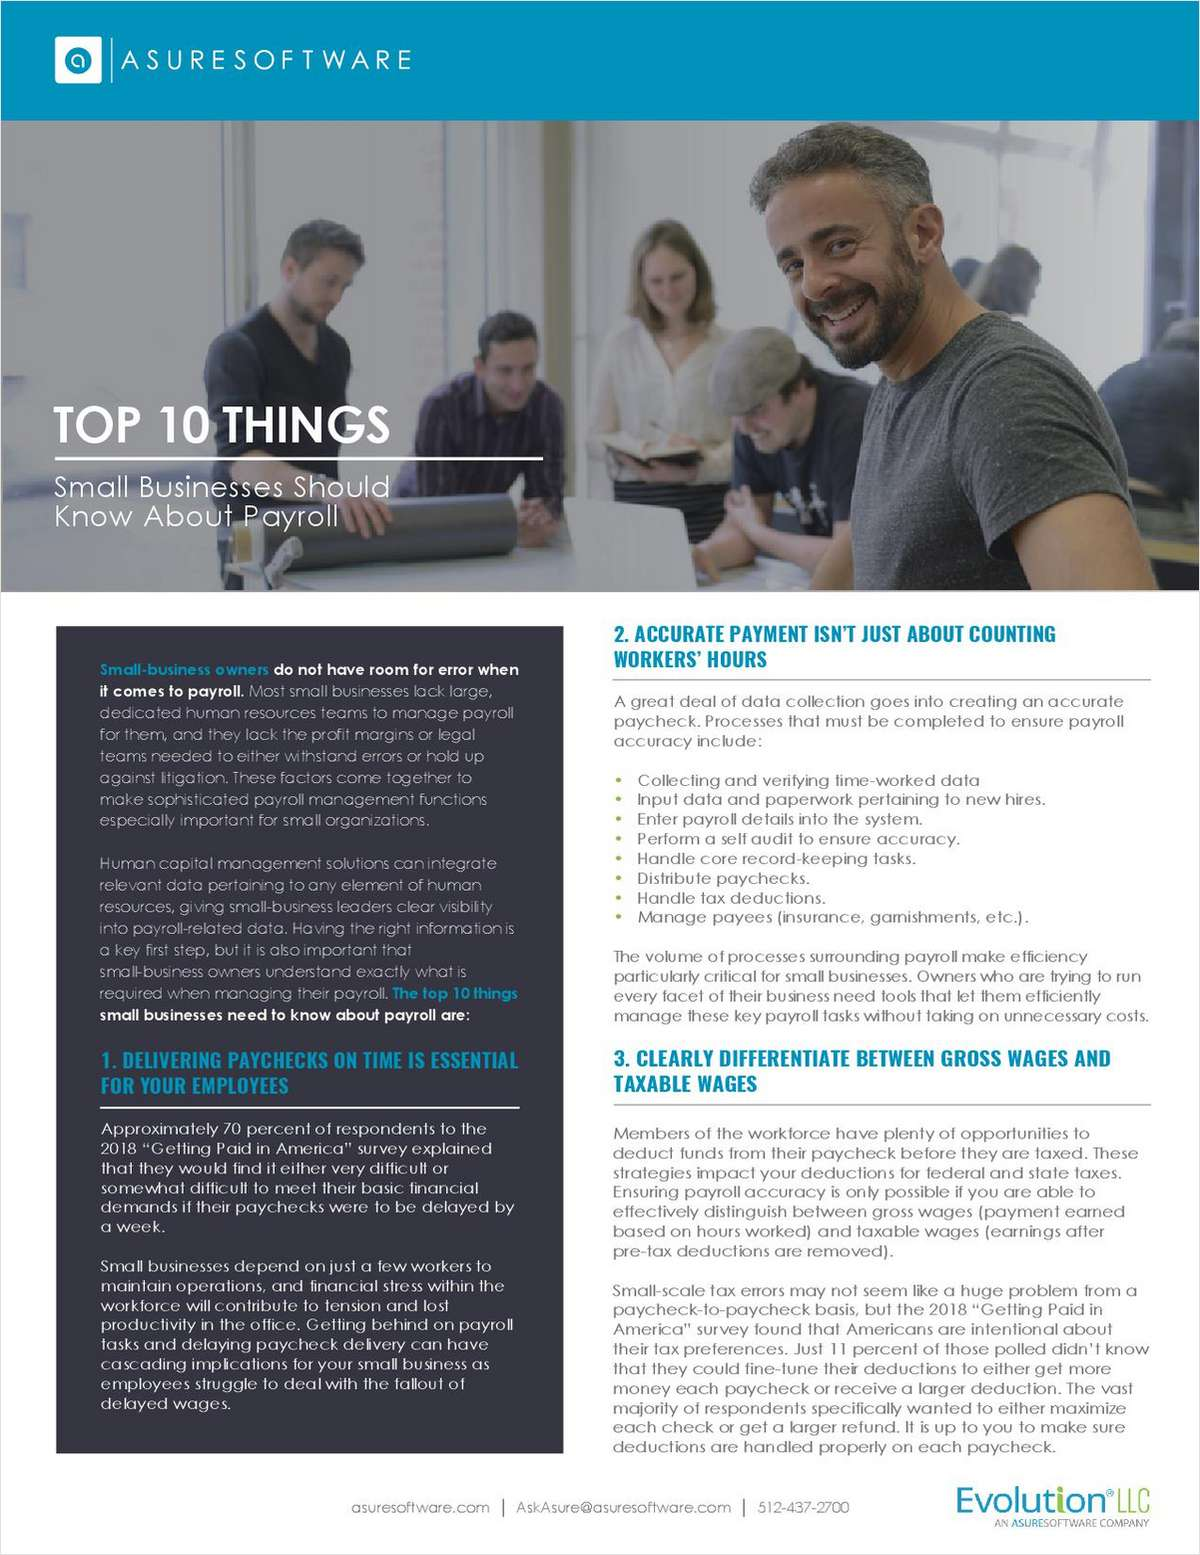 Top 10 Things Small Businesses Should Know About Payroll